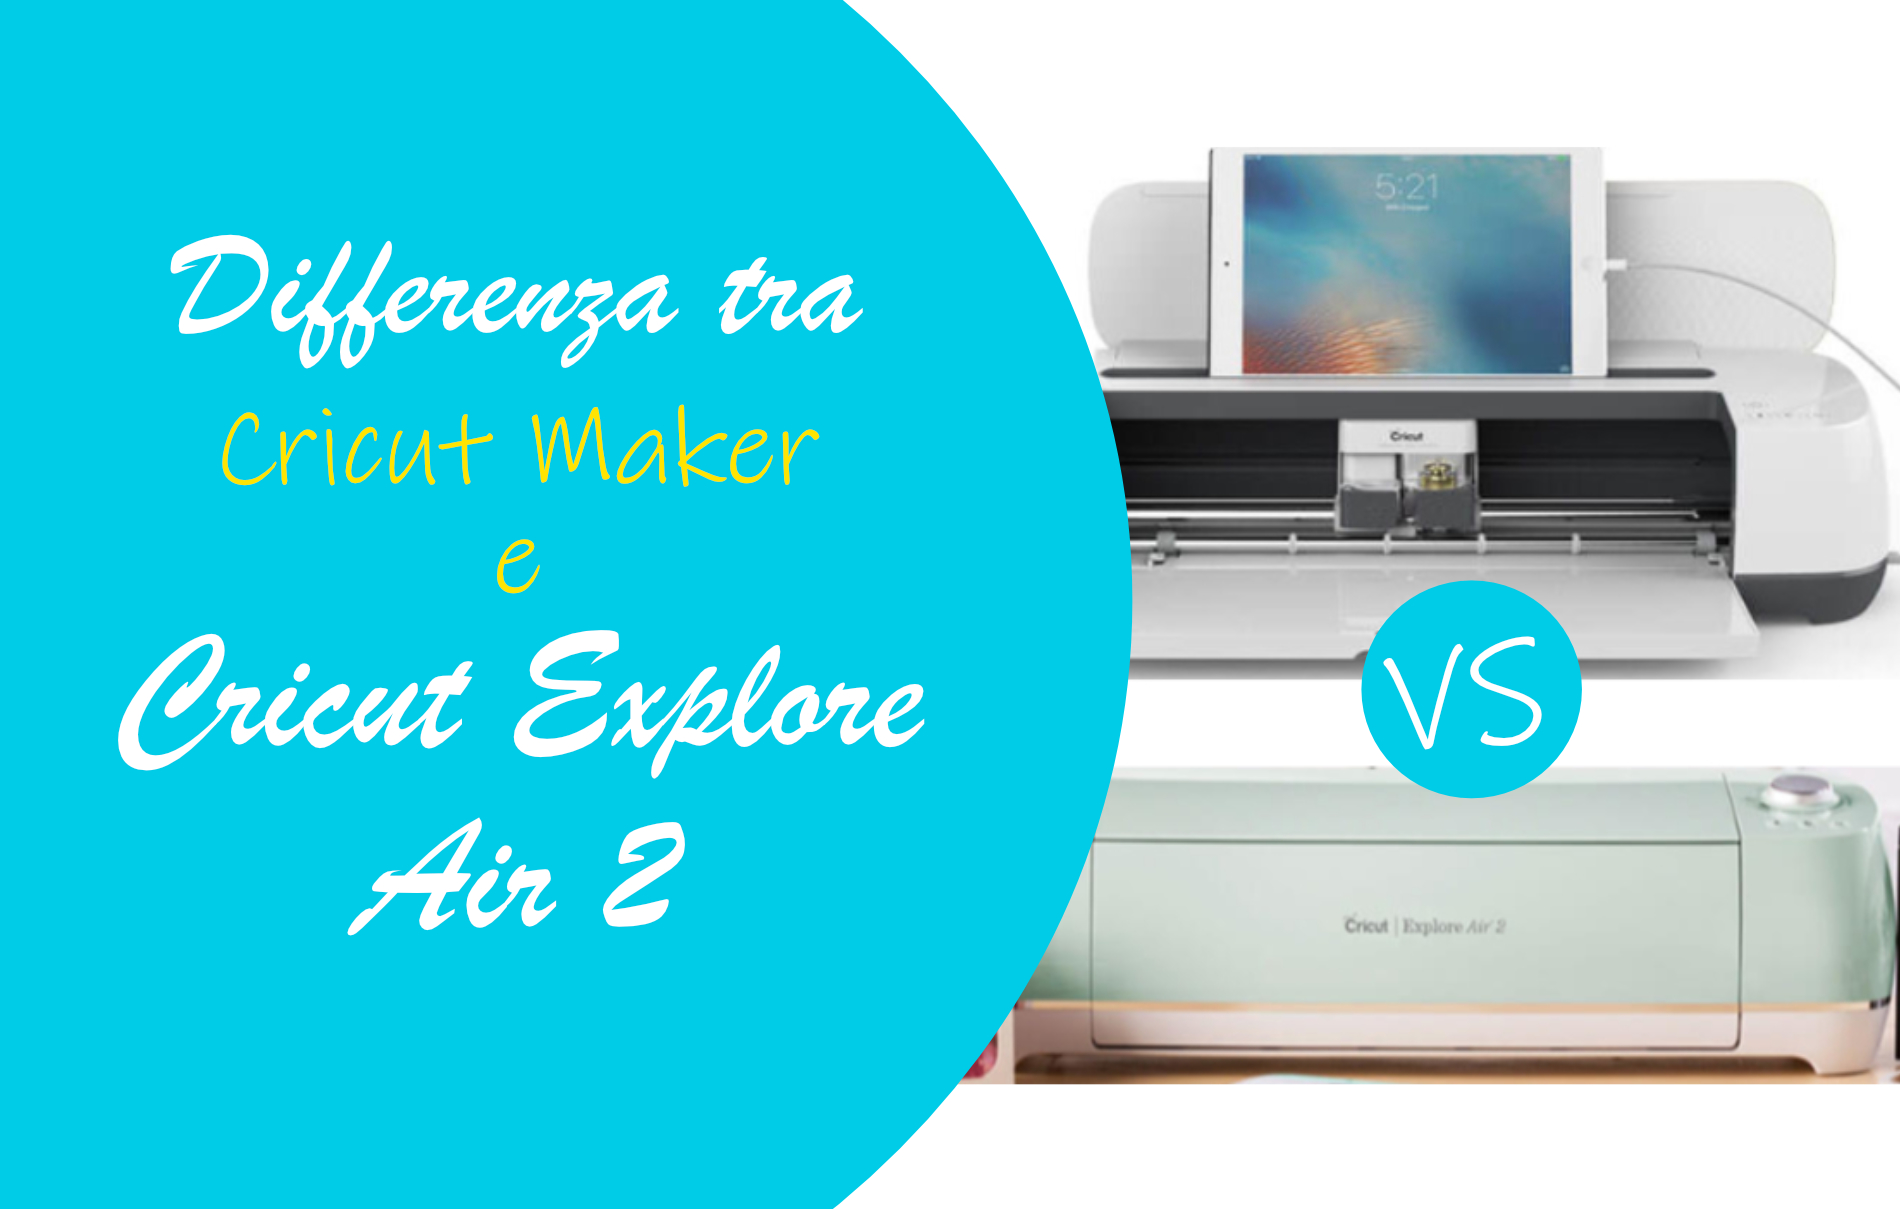 Differenza tra Cricut Maker e Cricut Explore Air 2